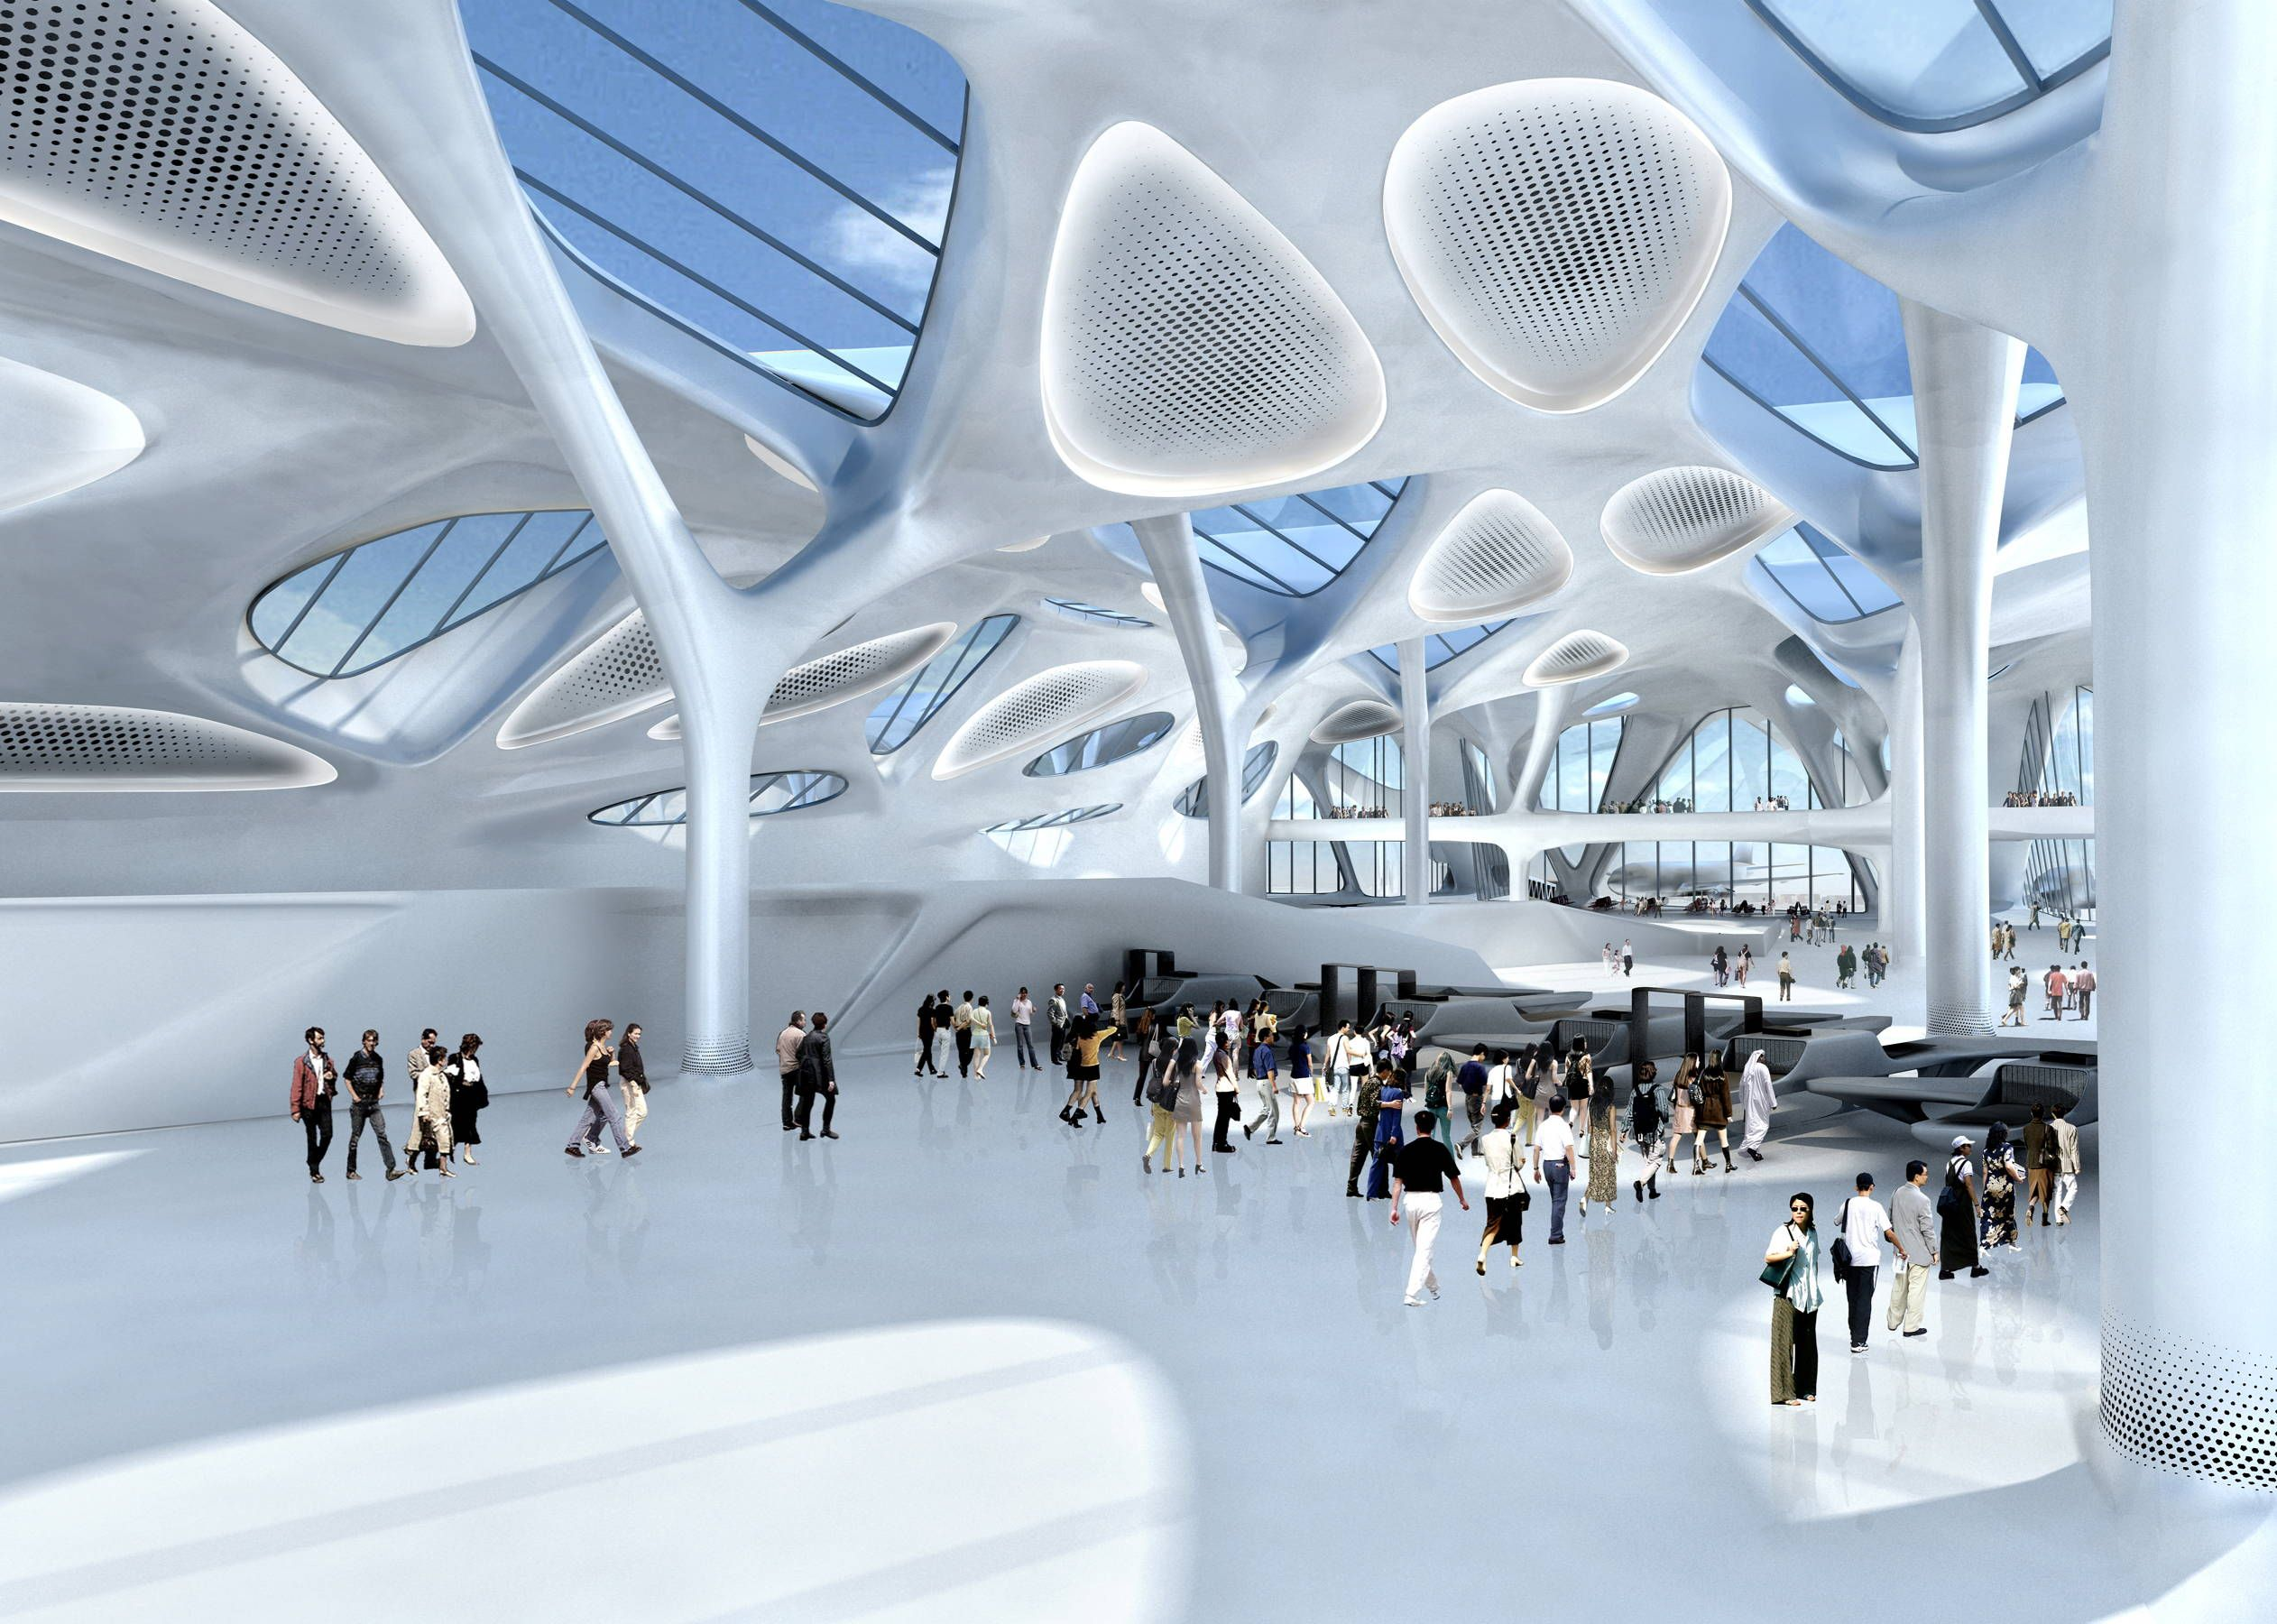 Pin By Prutha Raithatha On Airports Zaha Hadid Zaha Hadid Architecture Zaha Hadid Architects